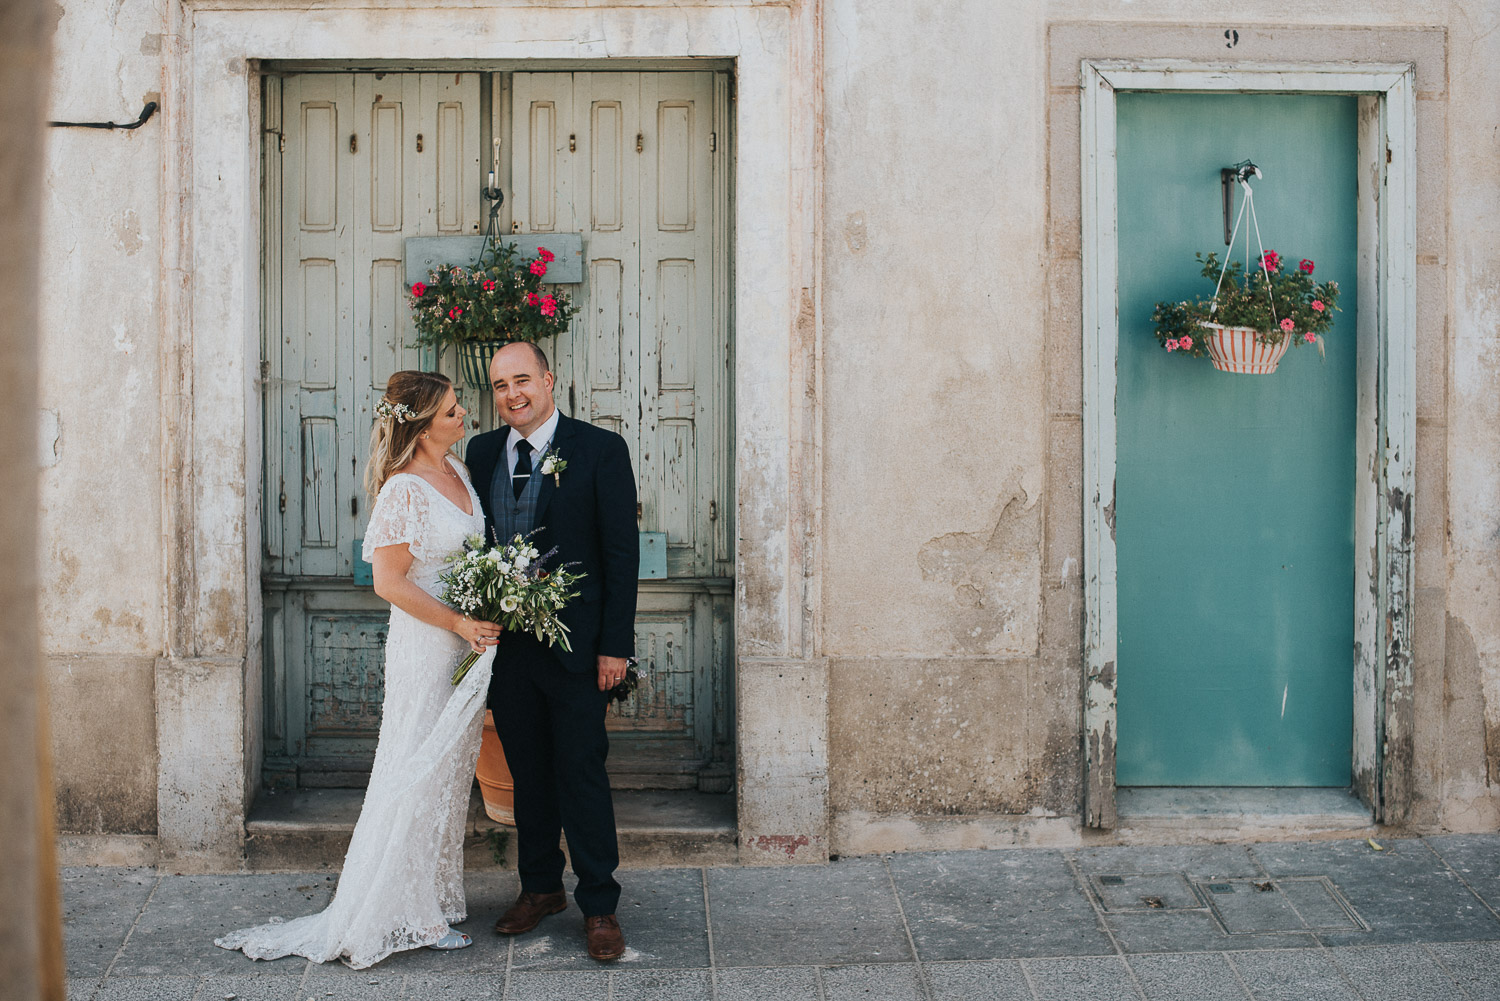 chateau_canet_carcassonne_wedding_katy_webb_photography_france_UK137